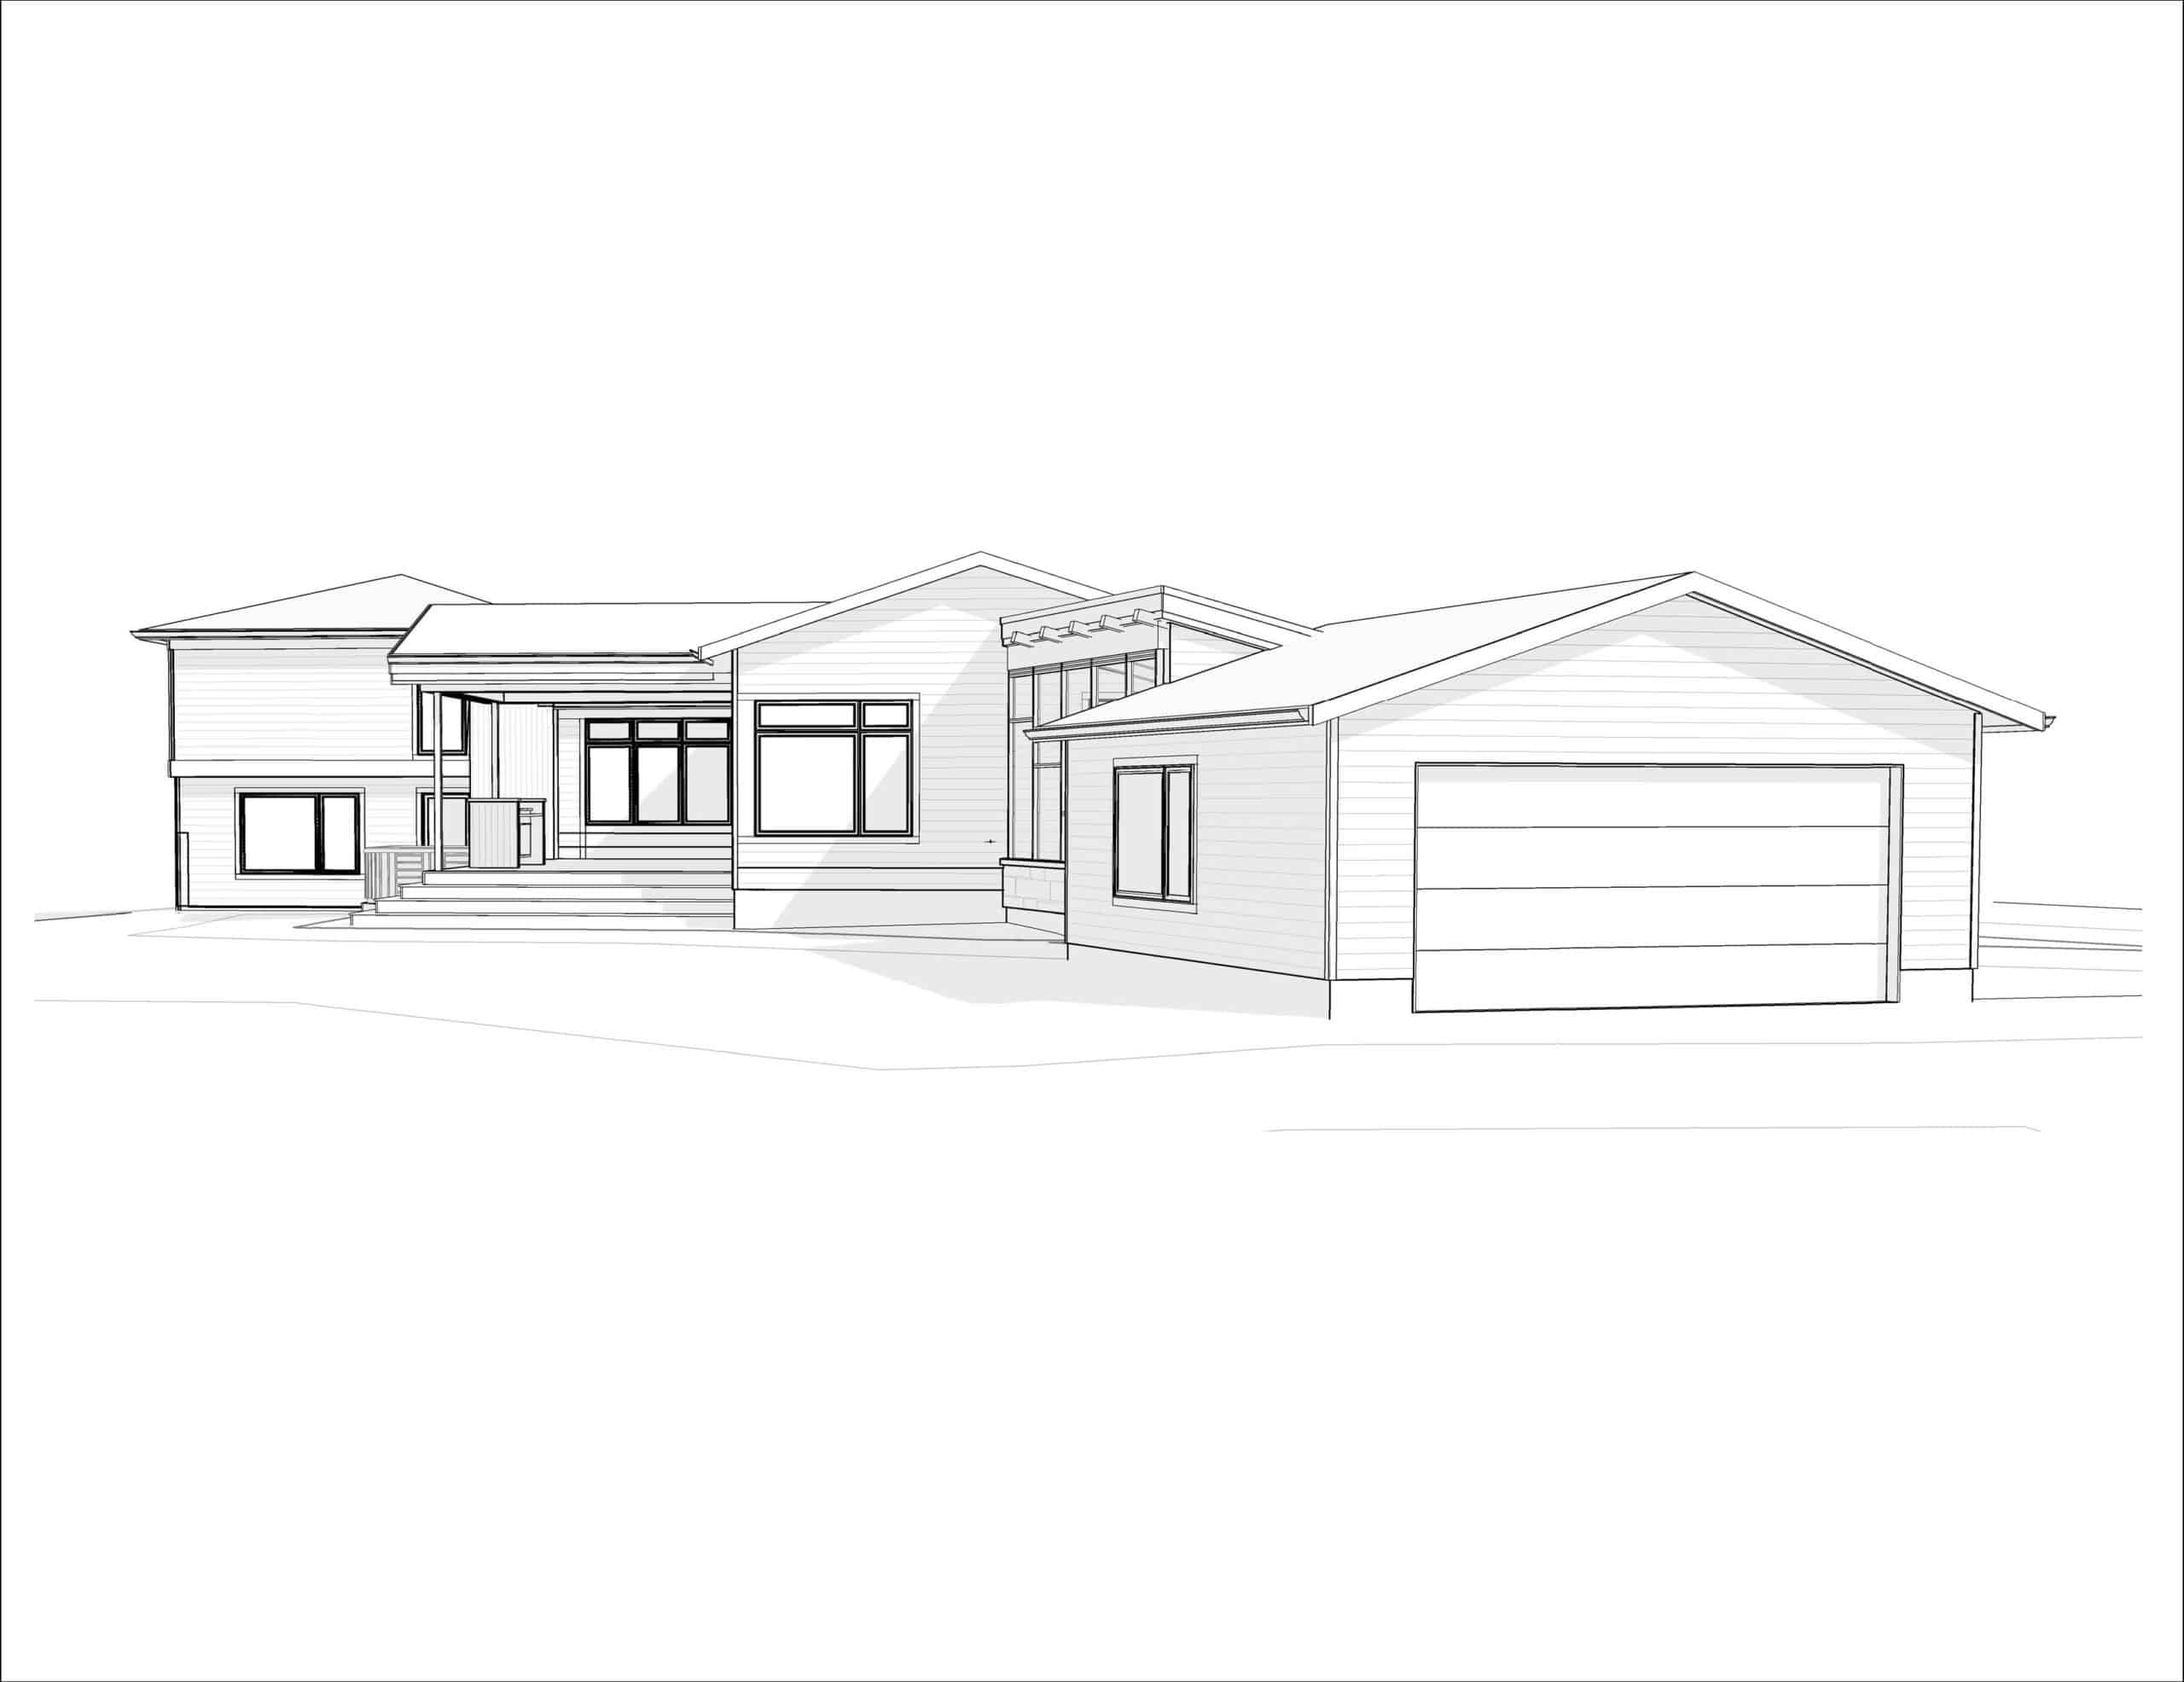 Lawson Place - Modern Renovation rear perspective